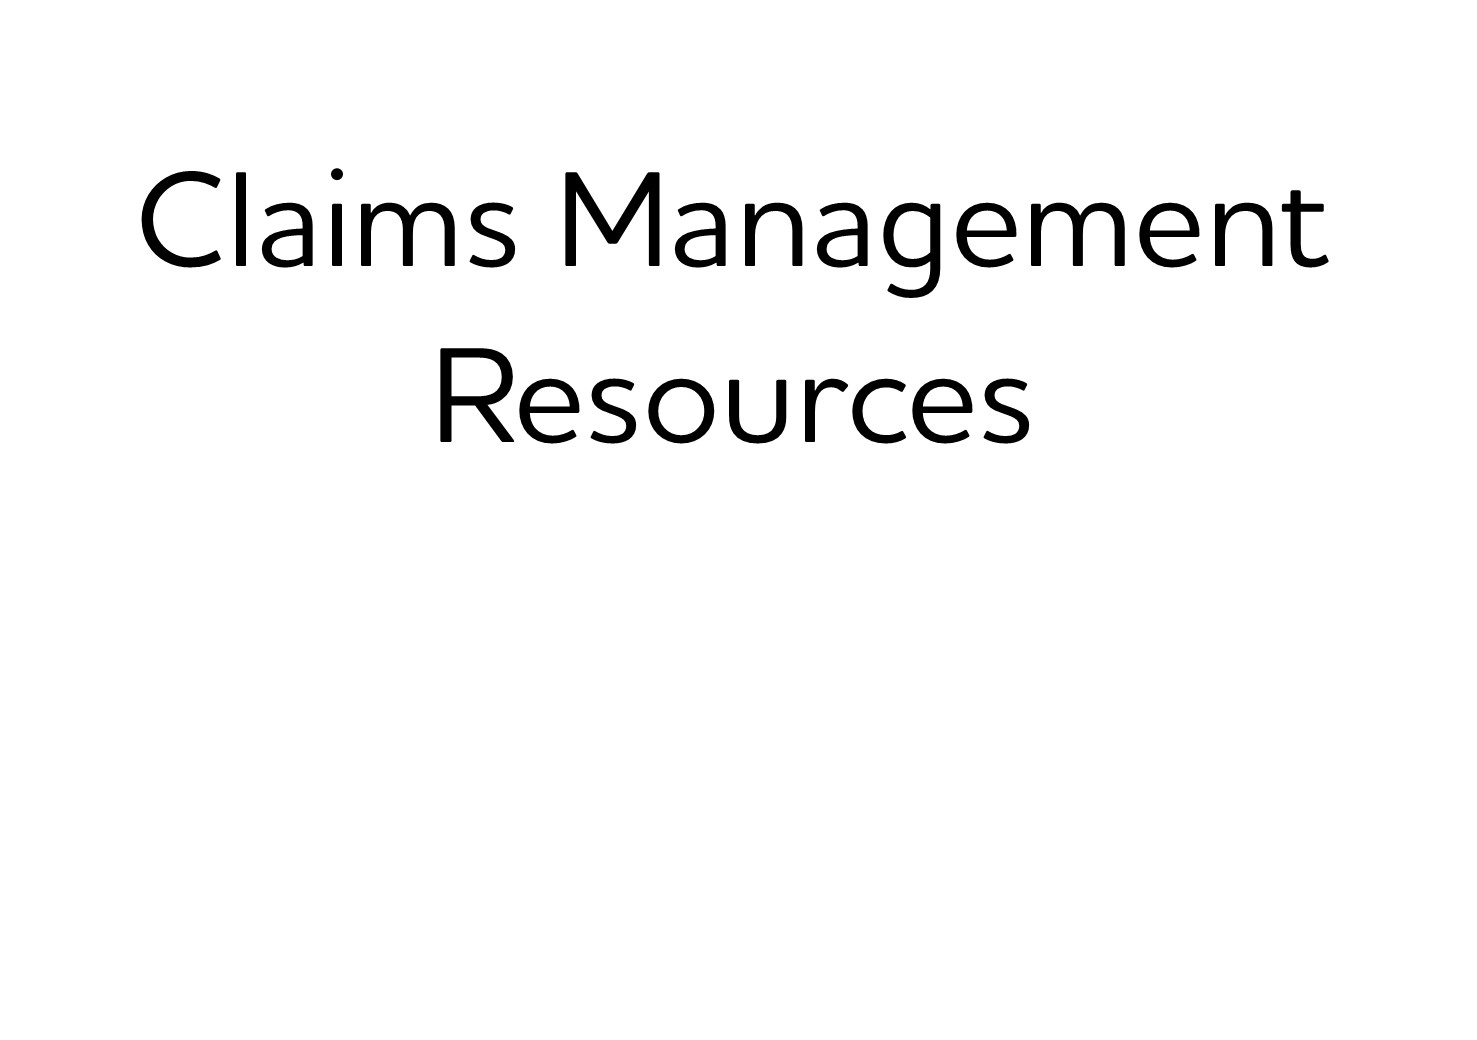 500. Claims Management Resources (Bronze)